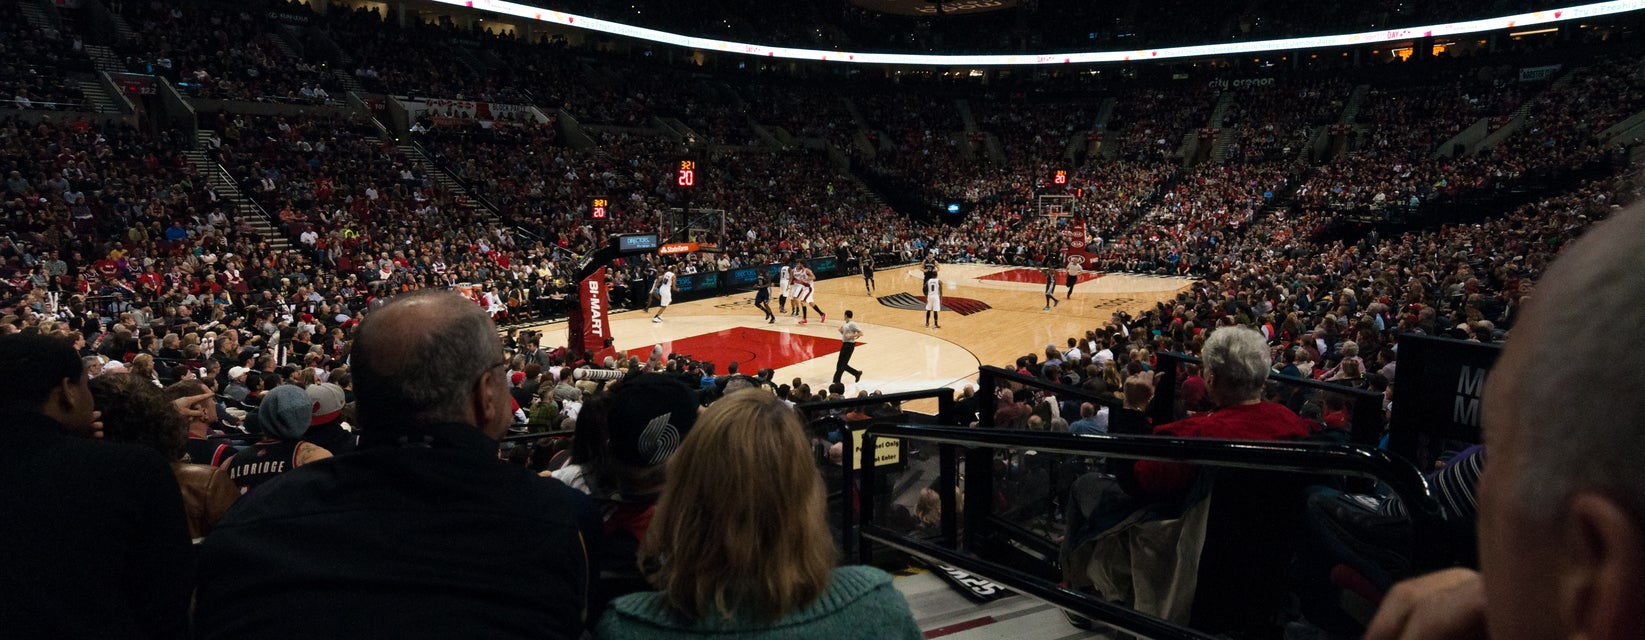 Seat view from Courtside